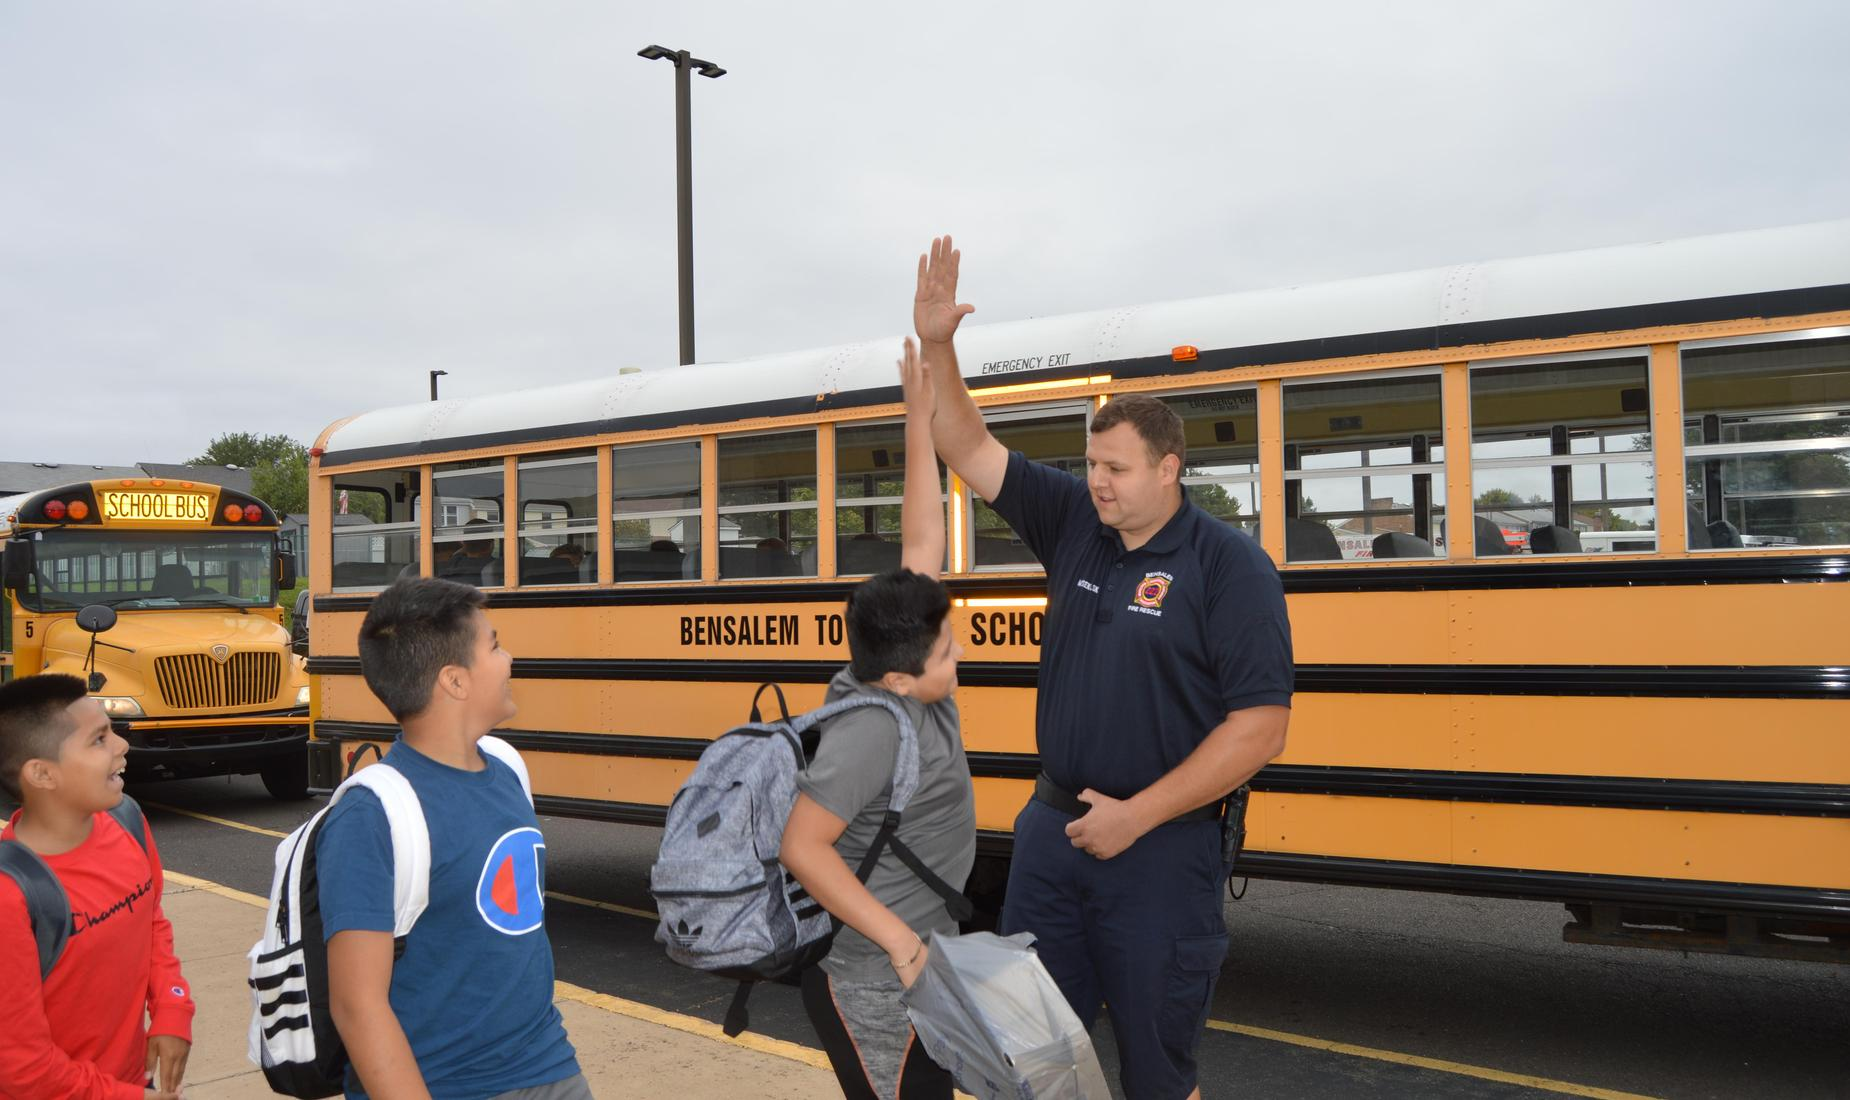 Bensalem Fire Rescue member high-fives a boy as two other boys look on